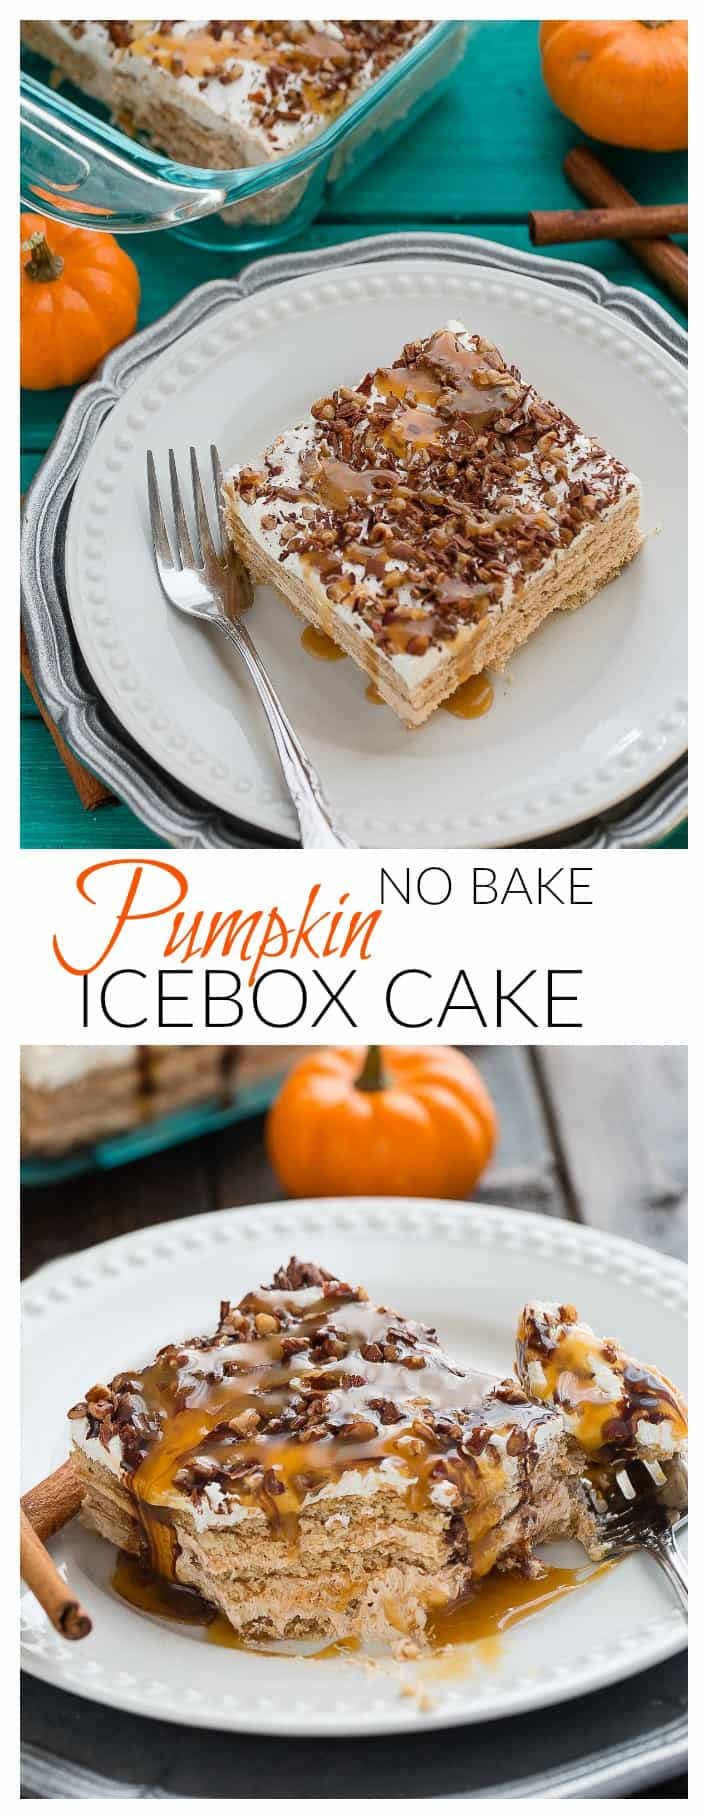 Pumpkin Ice Box Cake is the perfect easy no-bake fall dessert!